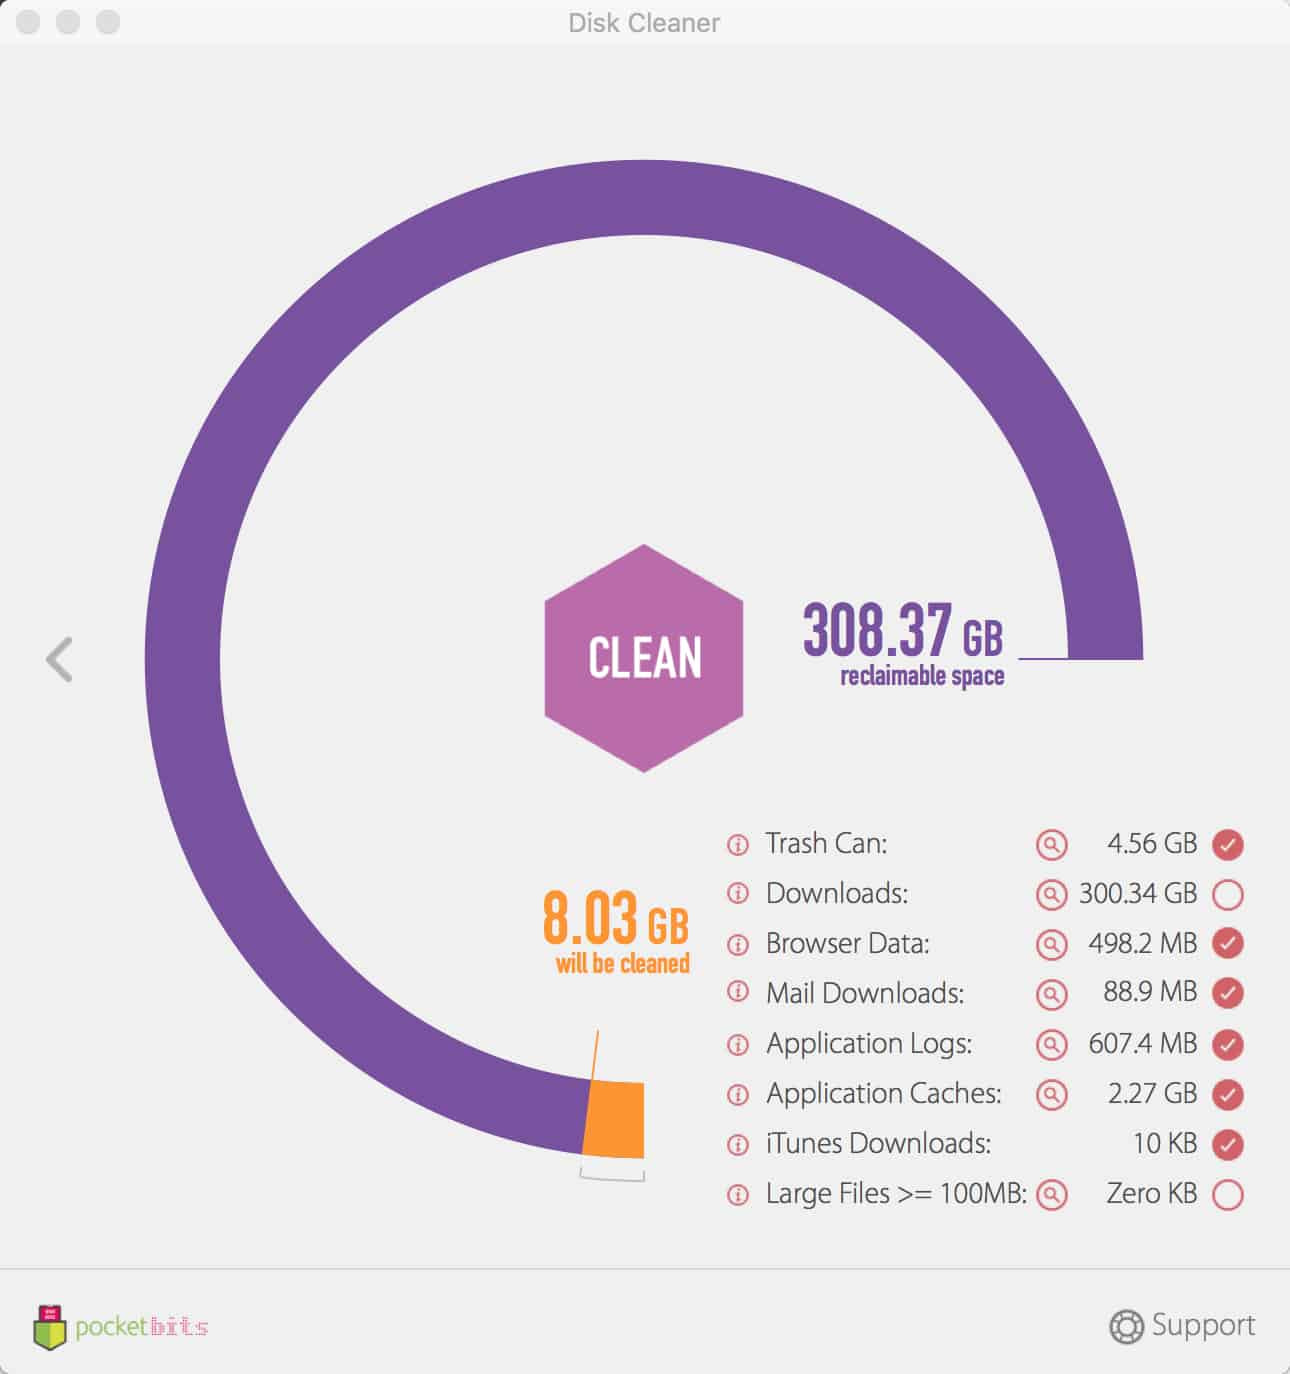 Disk Cleaner Results